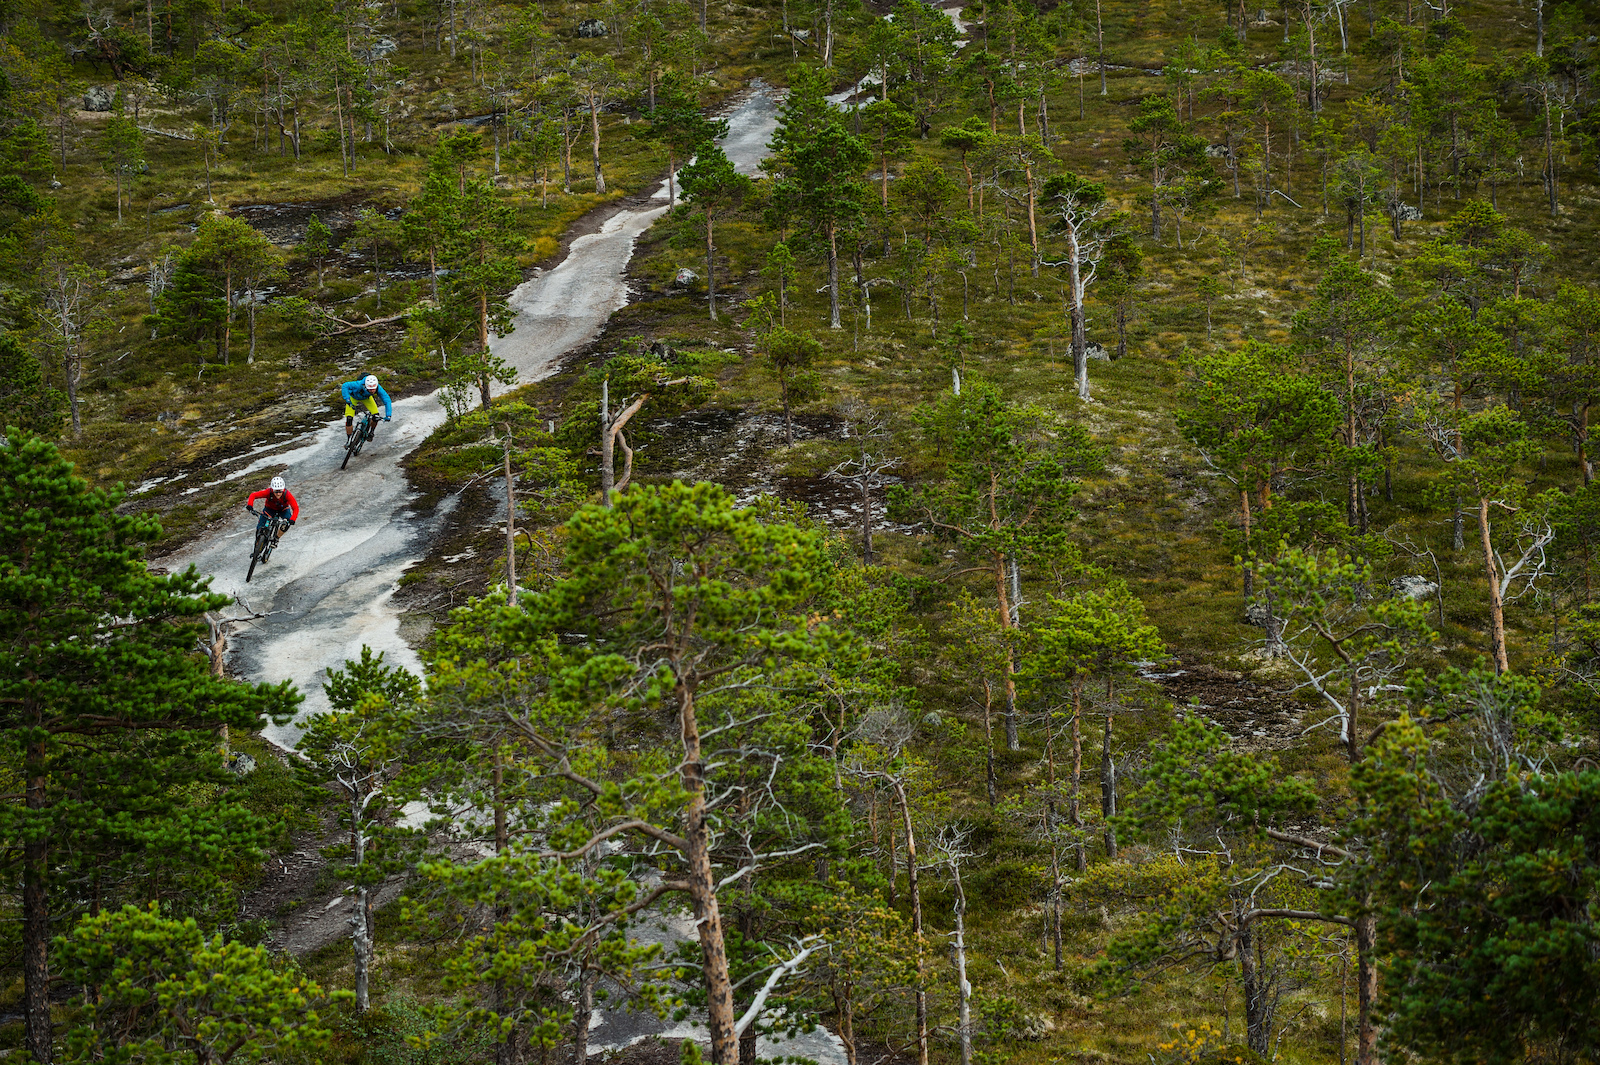 Mikael af Ekenstam and Joey Schulser riding in Skjomen Reinnesfjellet Norway.